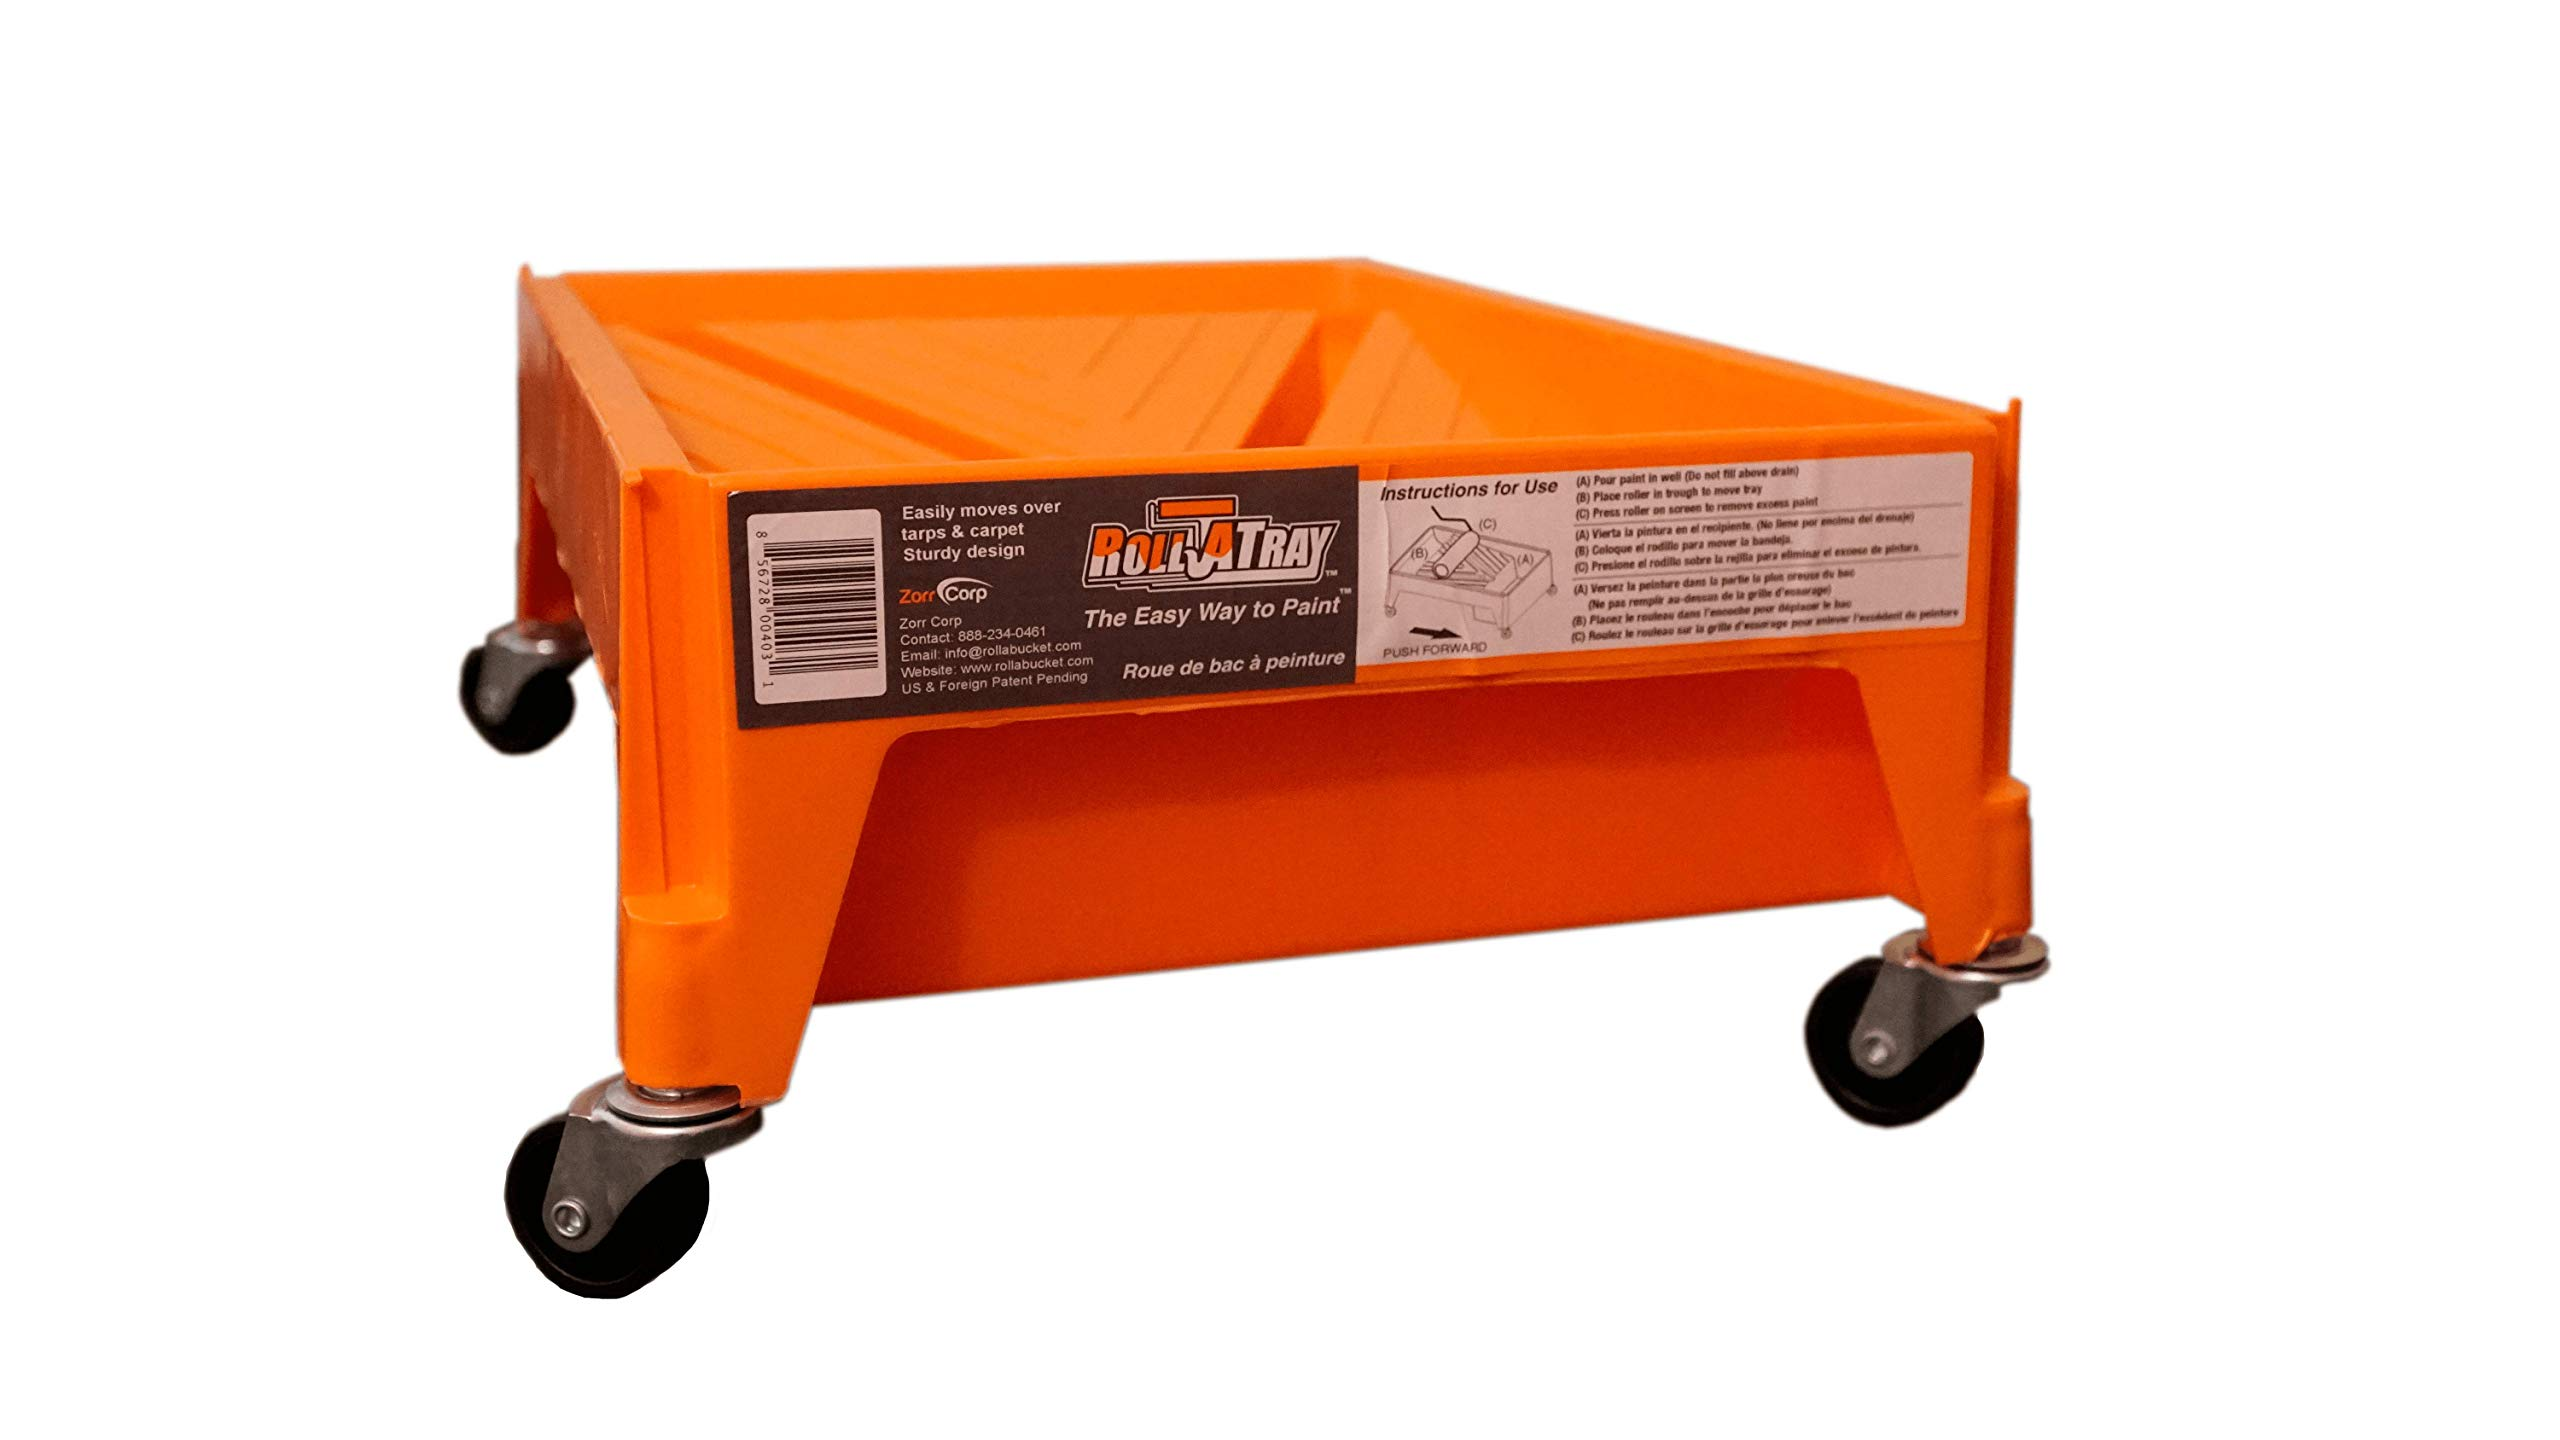 Roll A Tray paint tray on wheels